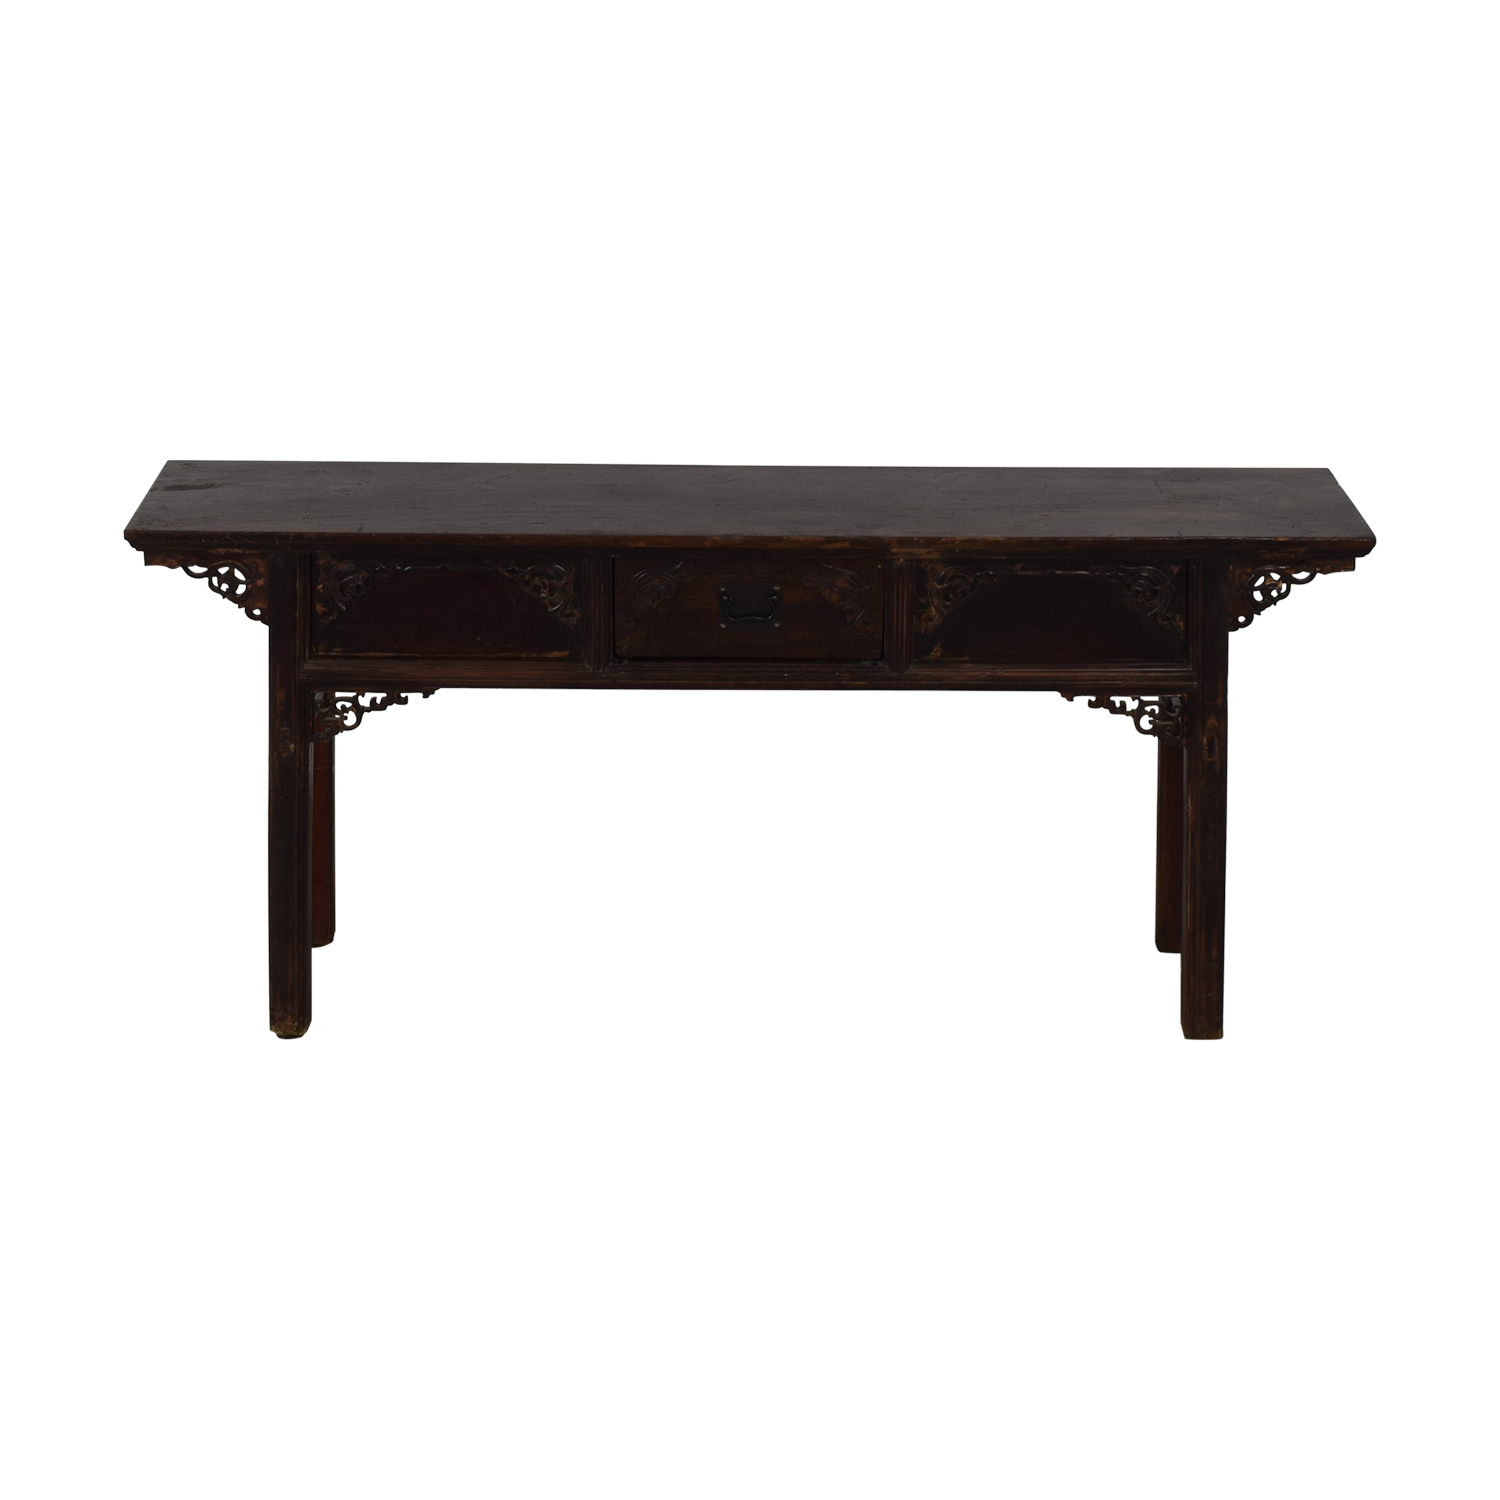 19th Century Qing Dynasty Console Table used